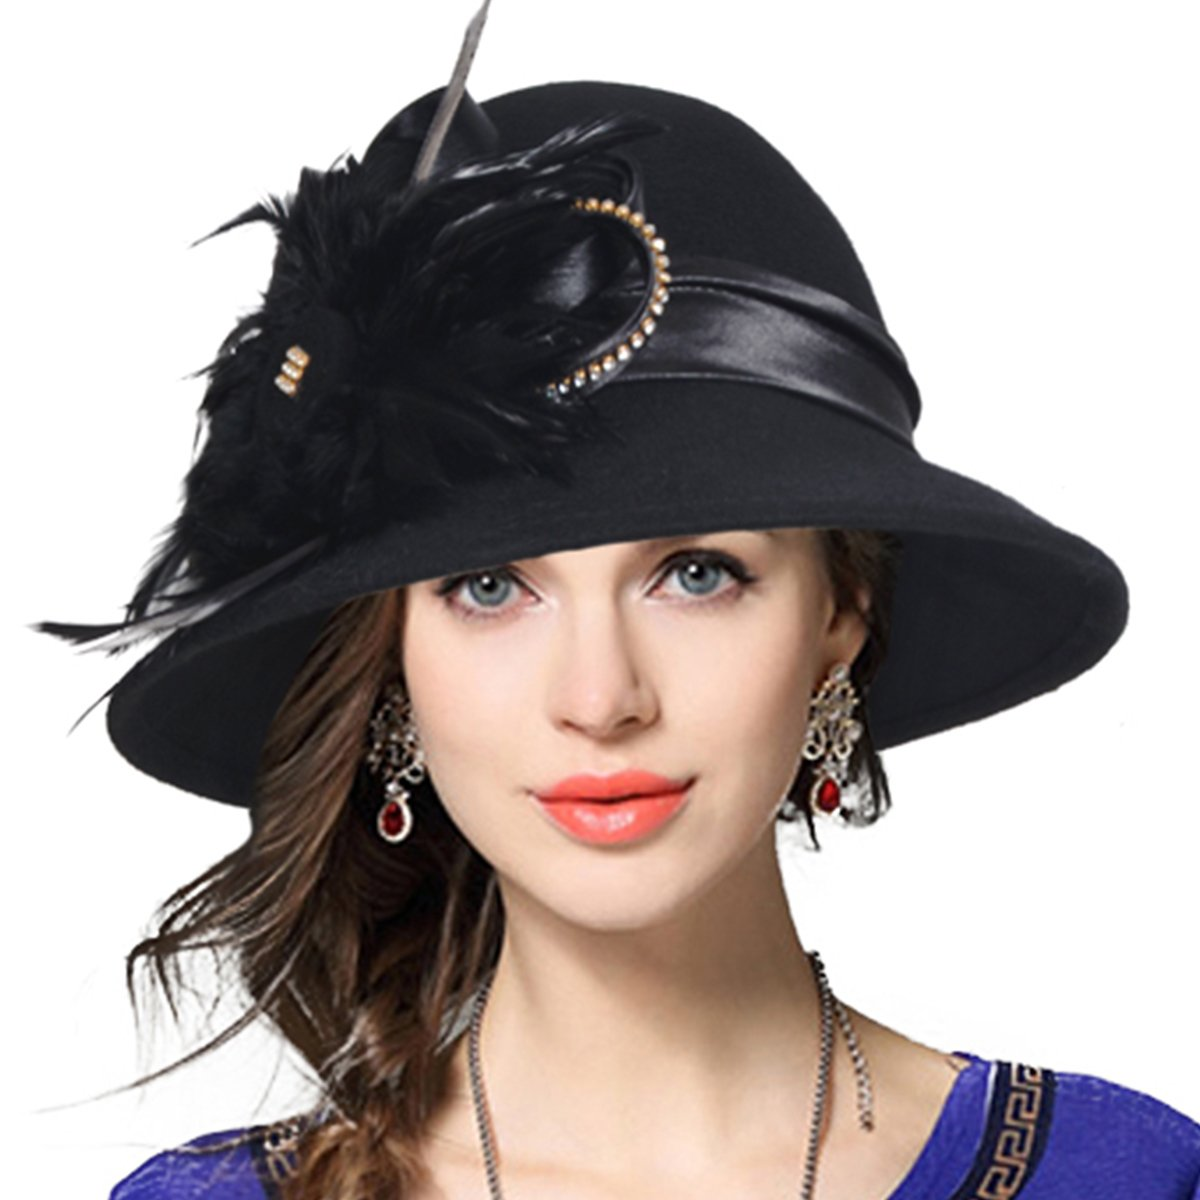 1920s Accessories | Great Gatsby Accessories Guide Womens Wool Church Dress Cloche Hat Plumy Felt Bucket Winter Hat $30.99 AT vintagedancer.com